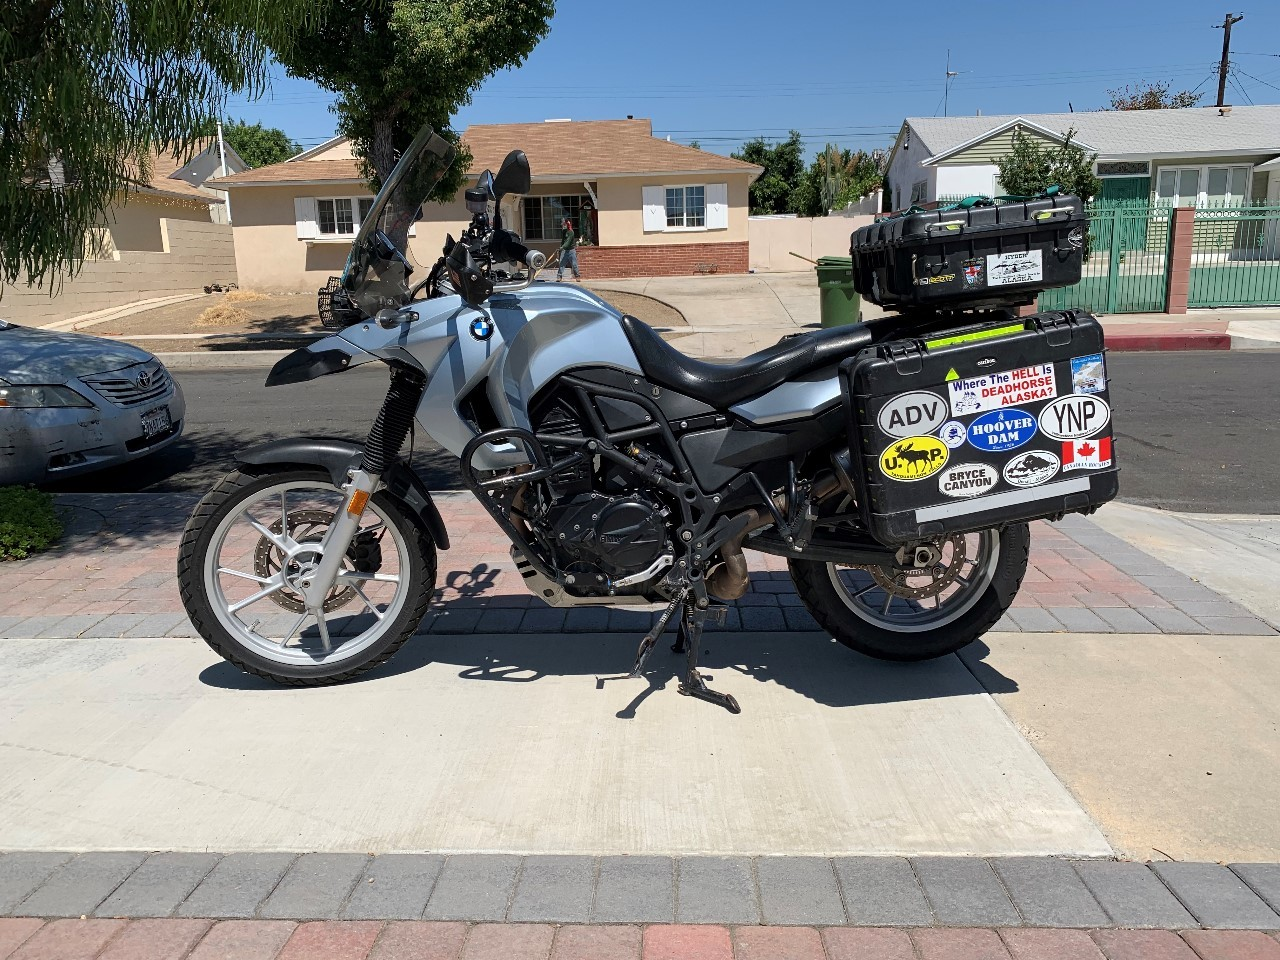 F650GS For Sale - BMW Motorcycles - Cycle Trader